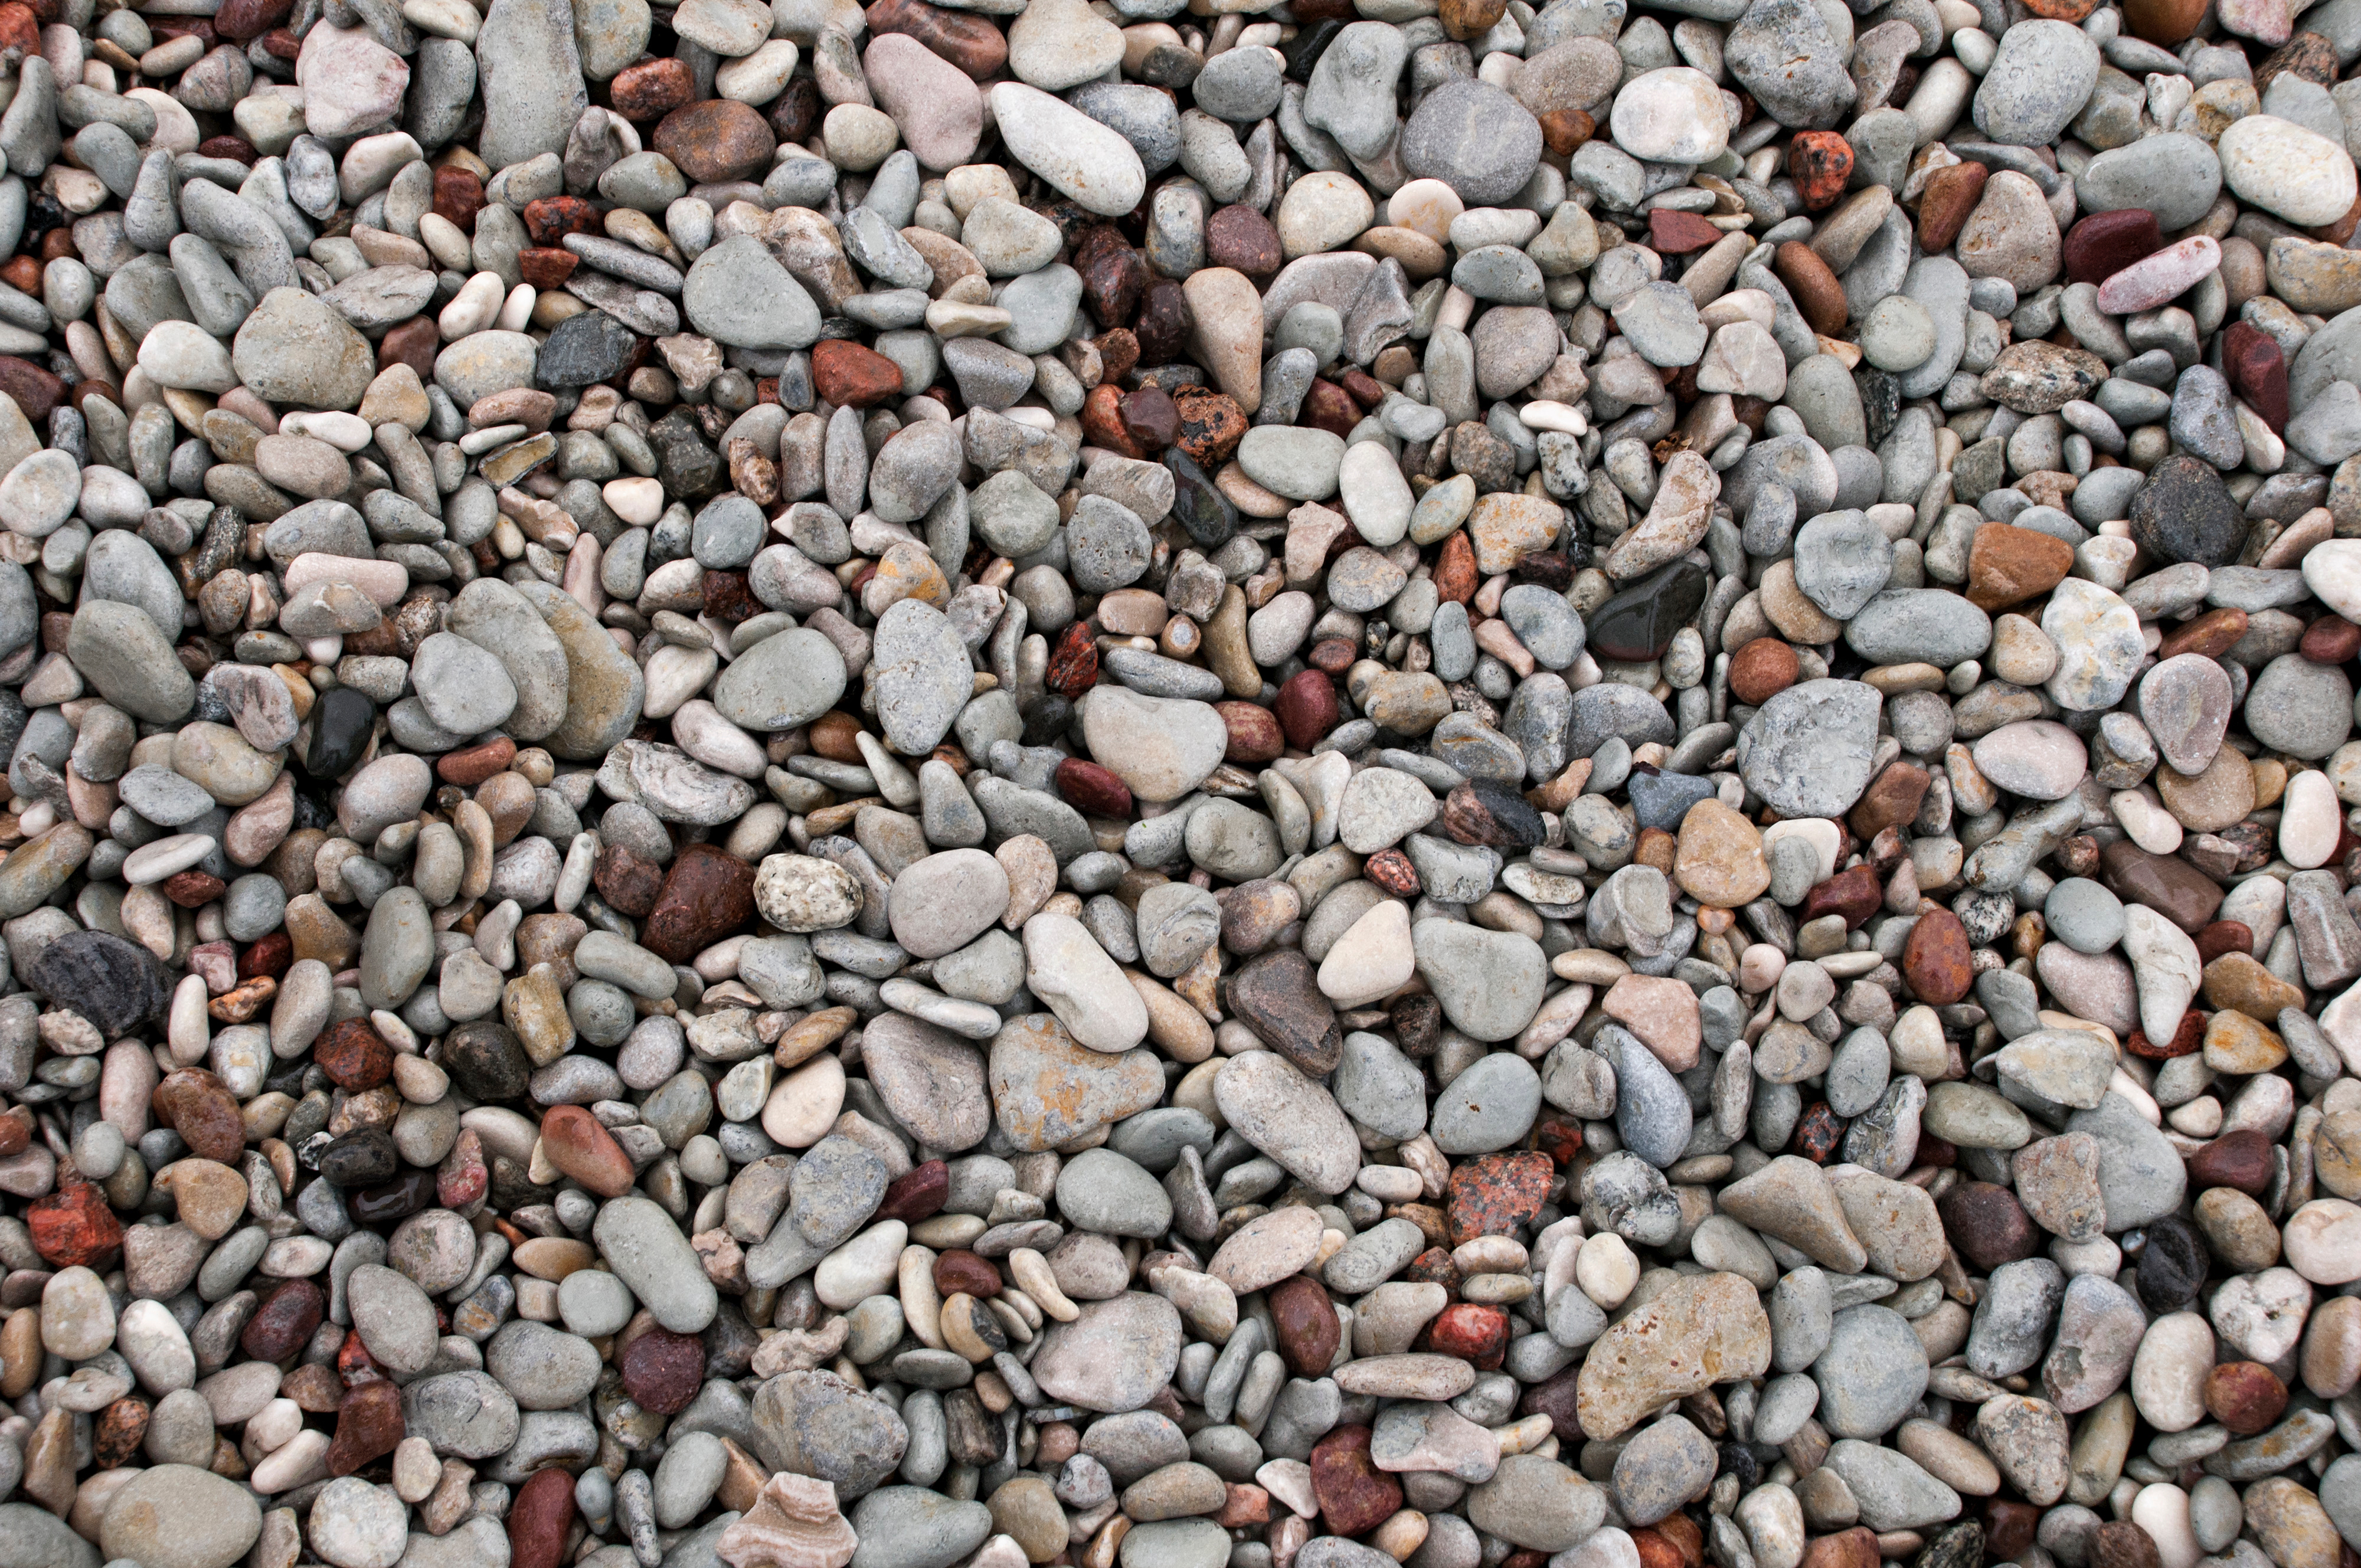 150163 free wallpaper 1080x1920 for phone, download images Nature, Pebble, Form, Forms, Sea Stones, Seastones 1080x1920 for mobile